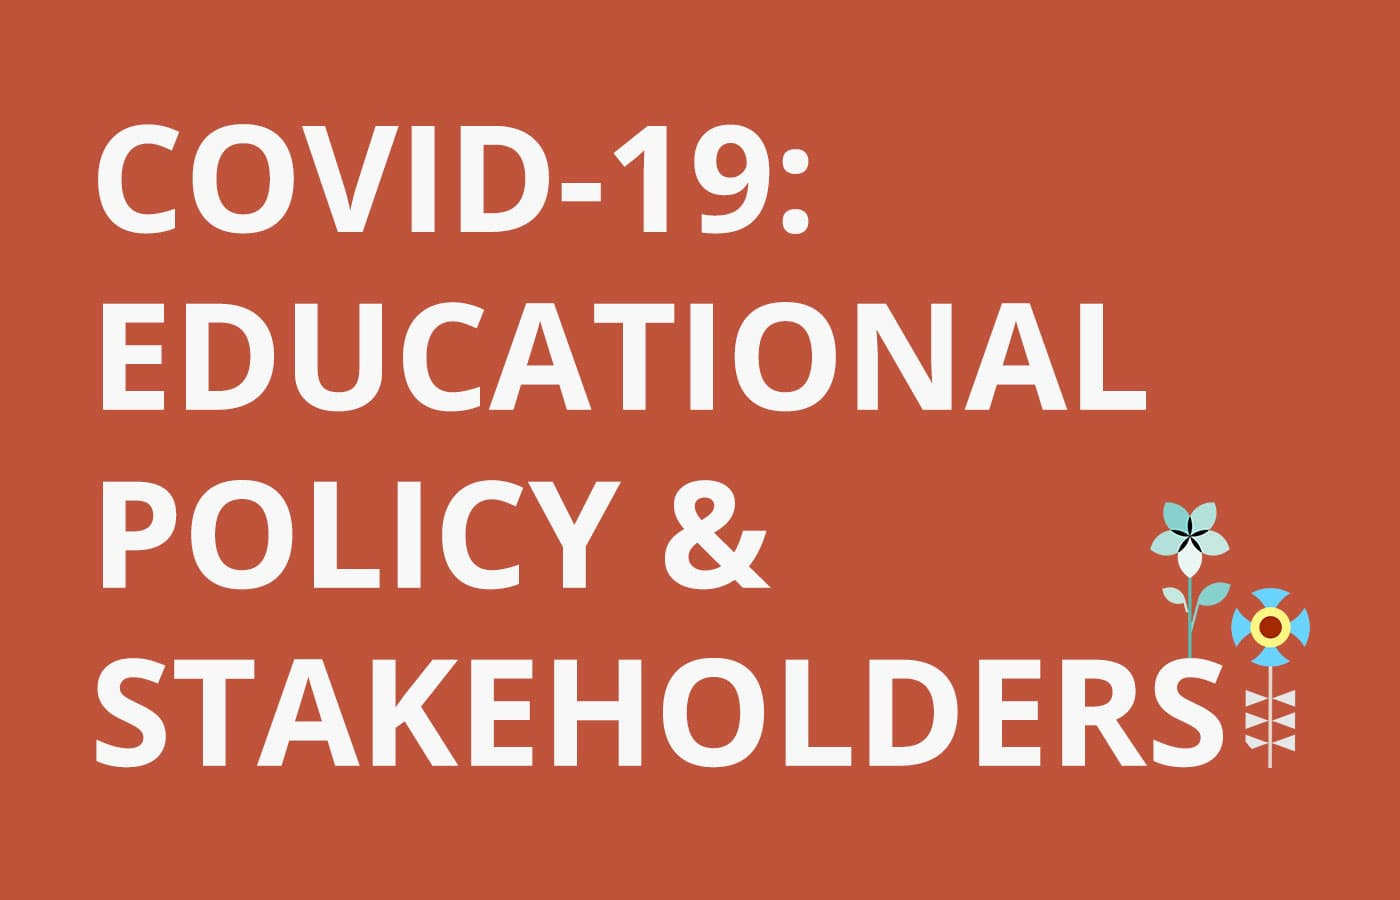 Seminar on Covid-19 and Educational Policy + Stakeholders